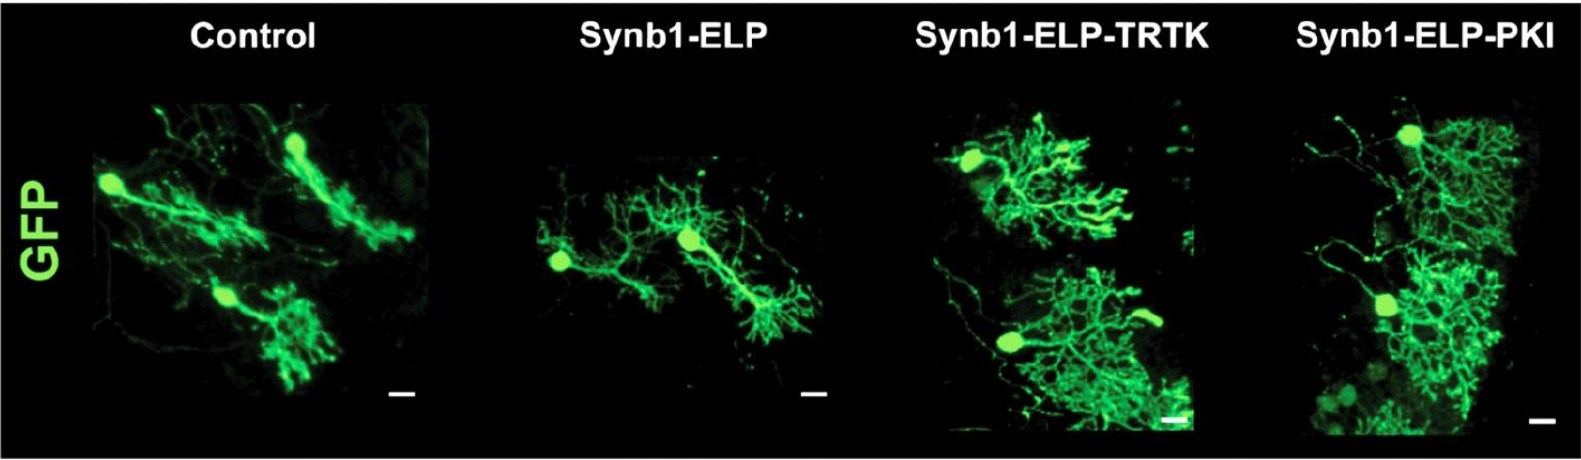 Purkinje neurons affected by SCA1 lose their branches (control). ELP on its own doesn't fix the damage (Synb1-ELP), but when a therapeutic is attached (TRTK and PKI), the neurons recover.